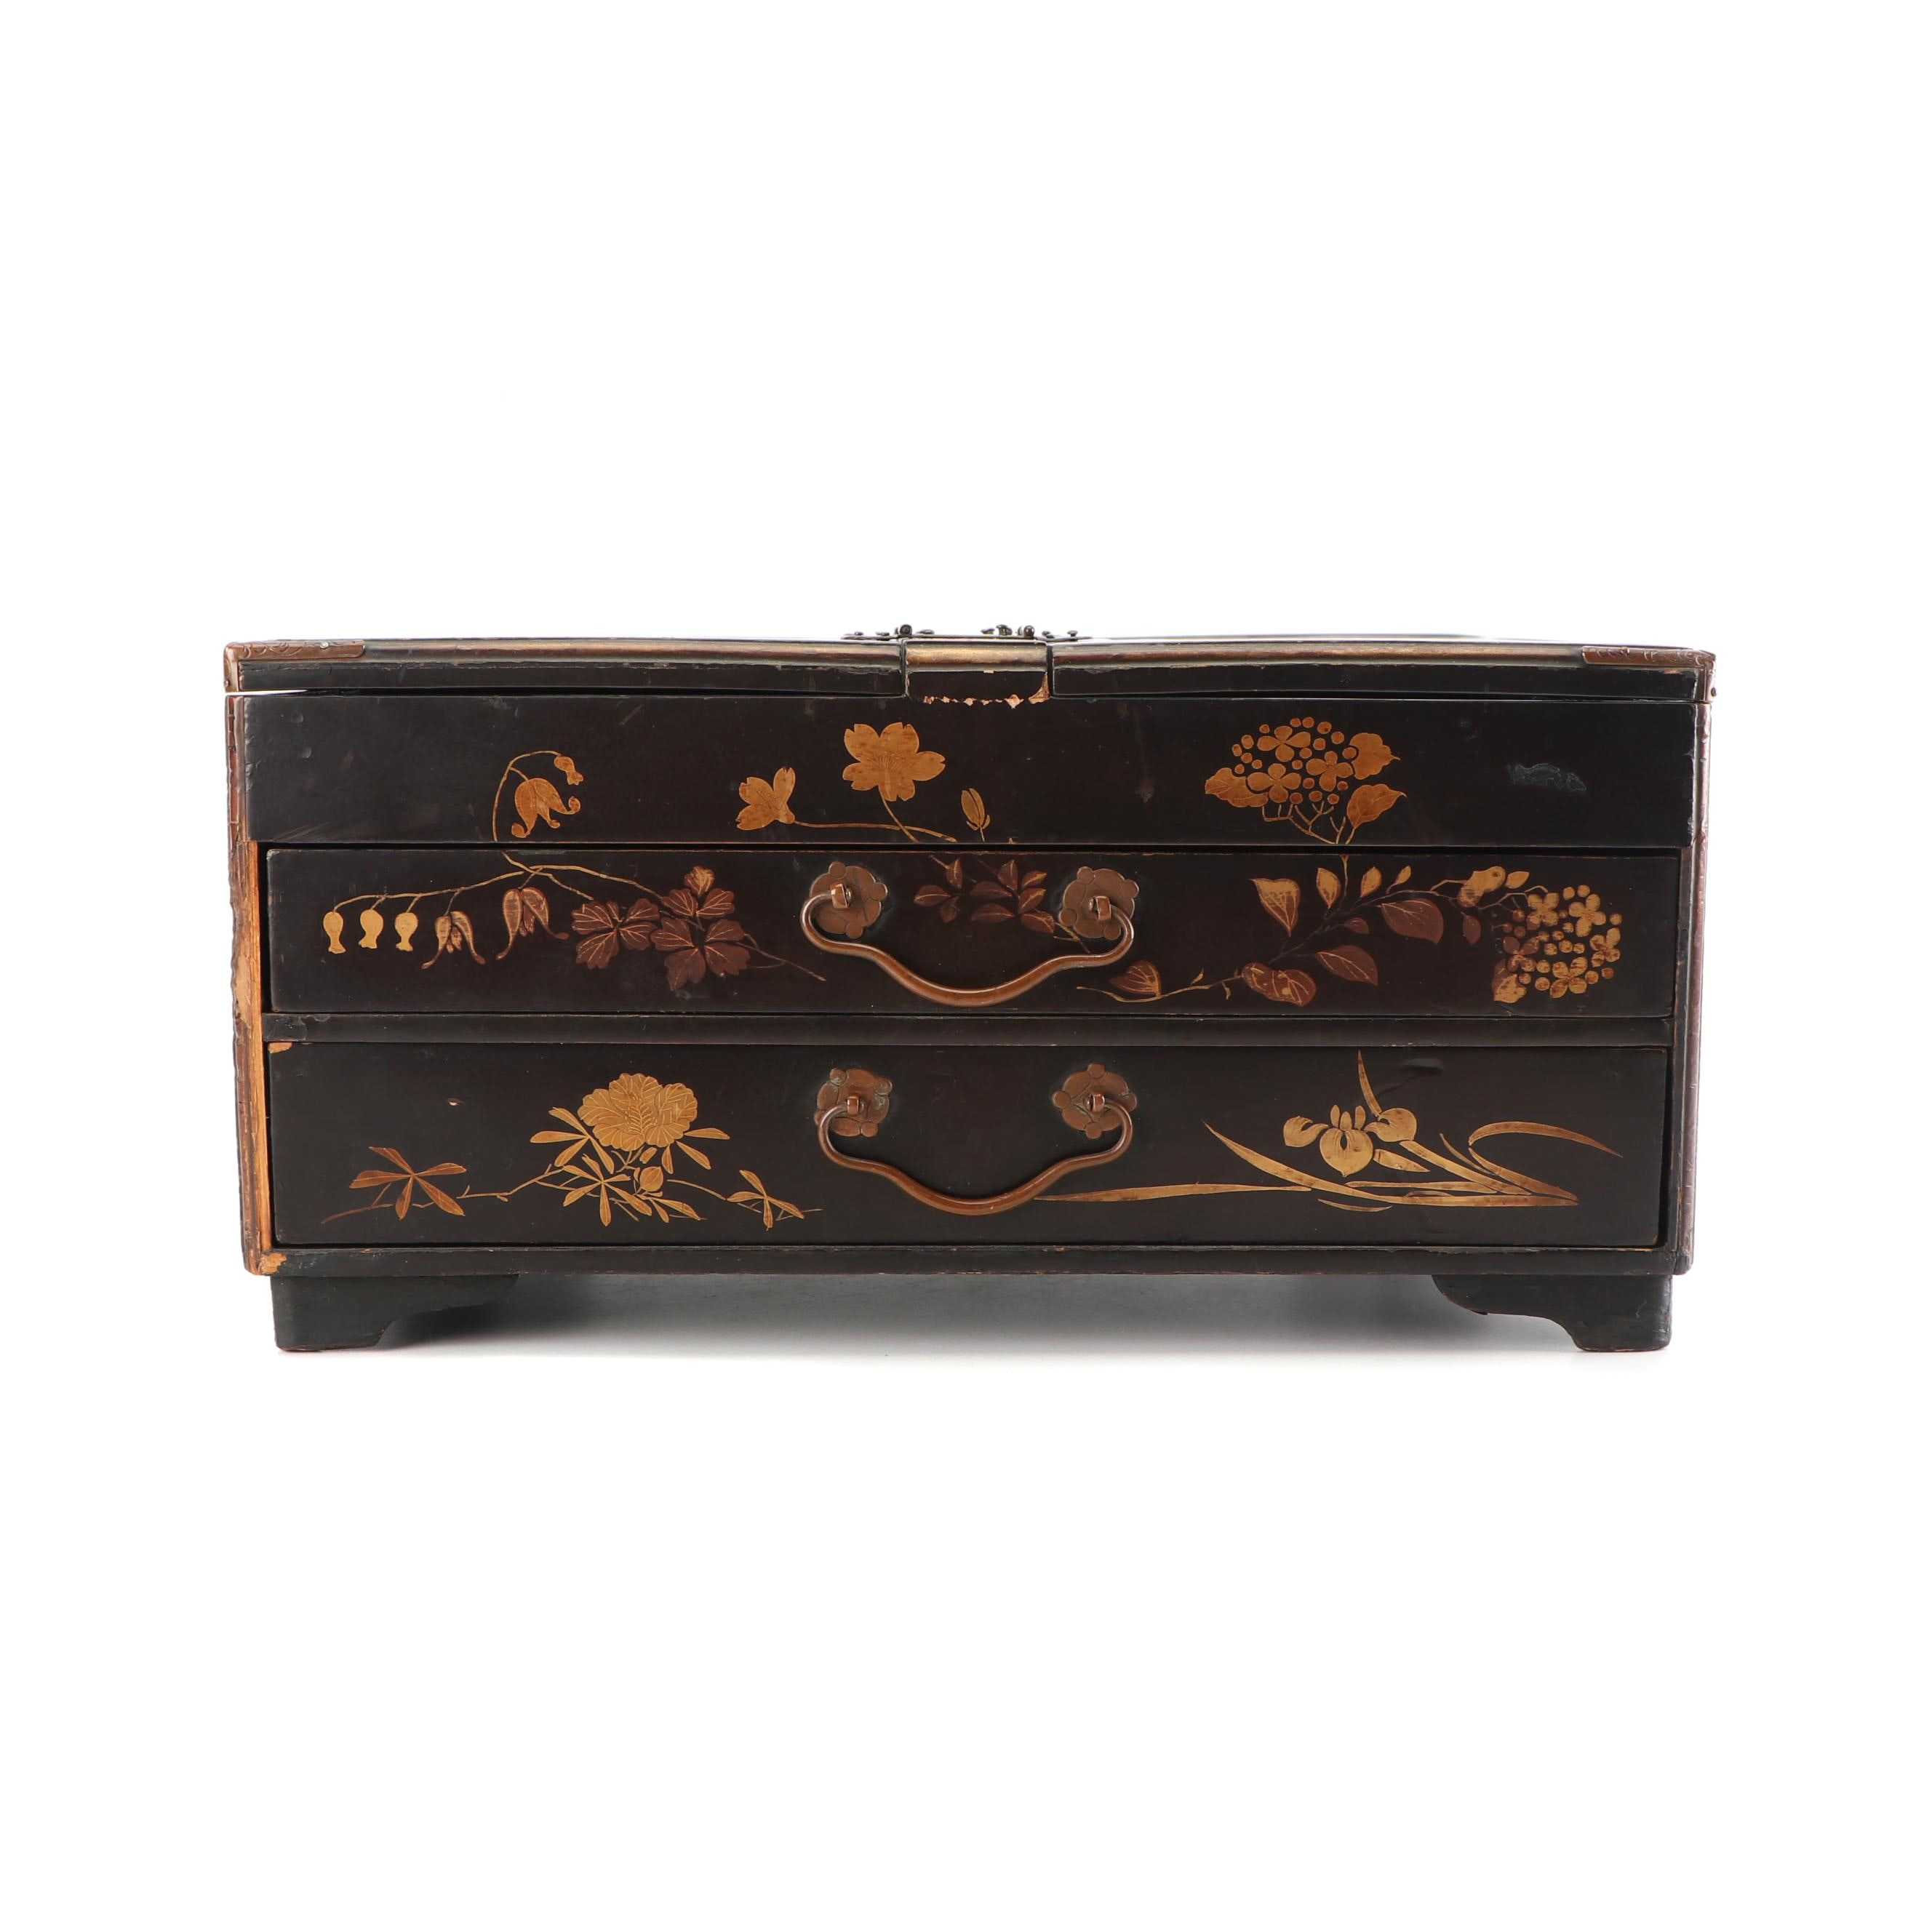 Japanese Hand Decorated Lacquered Box, Late Meiji Period